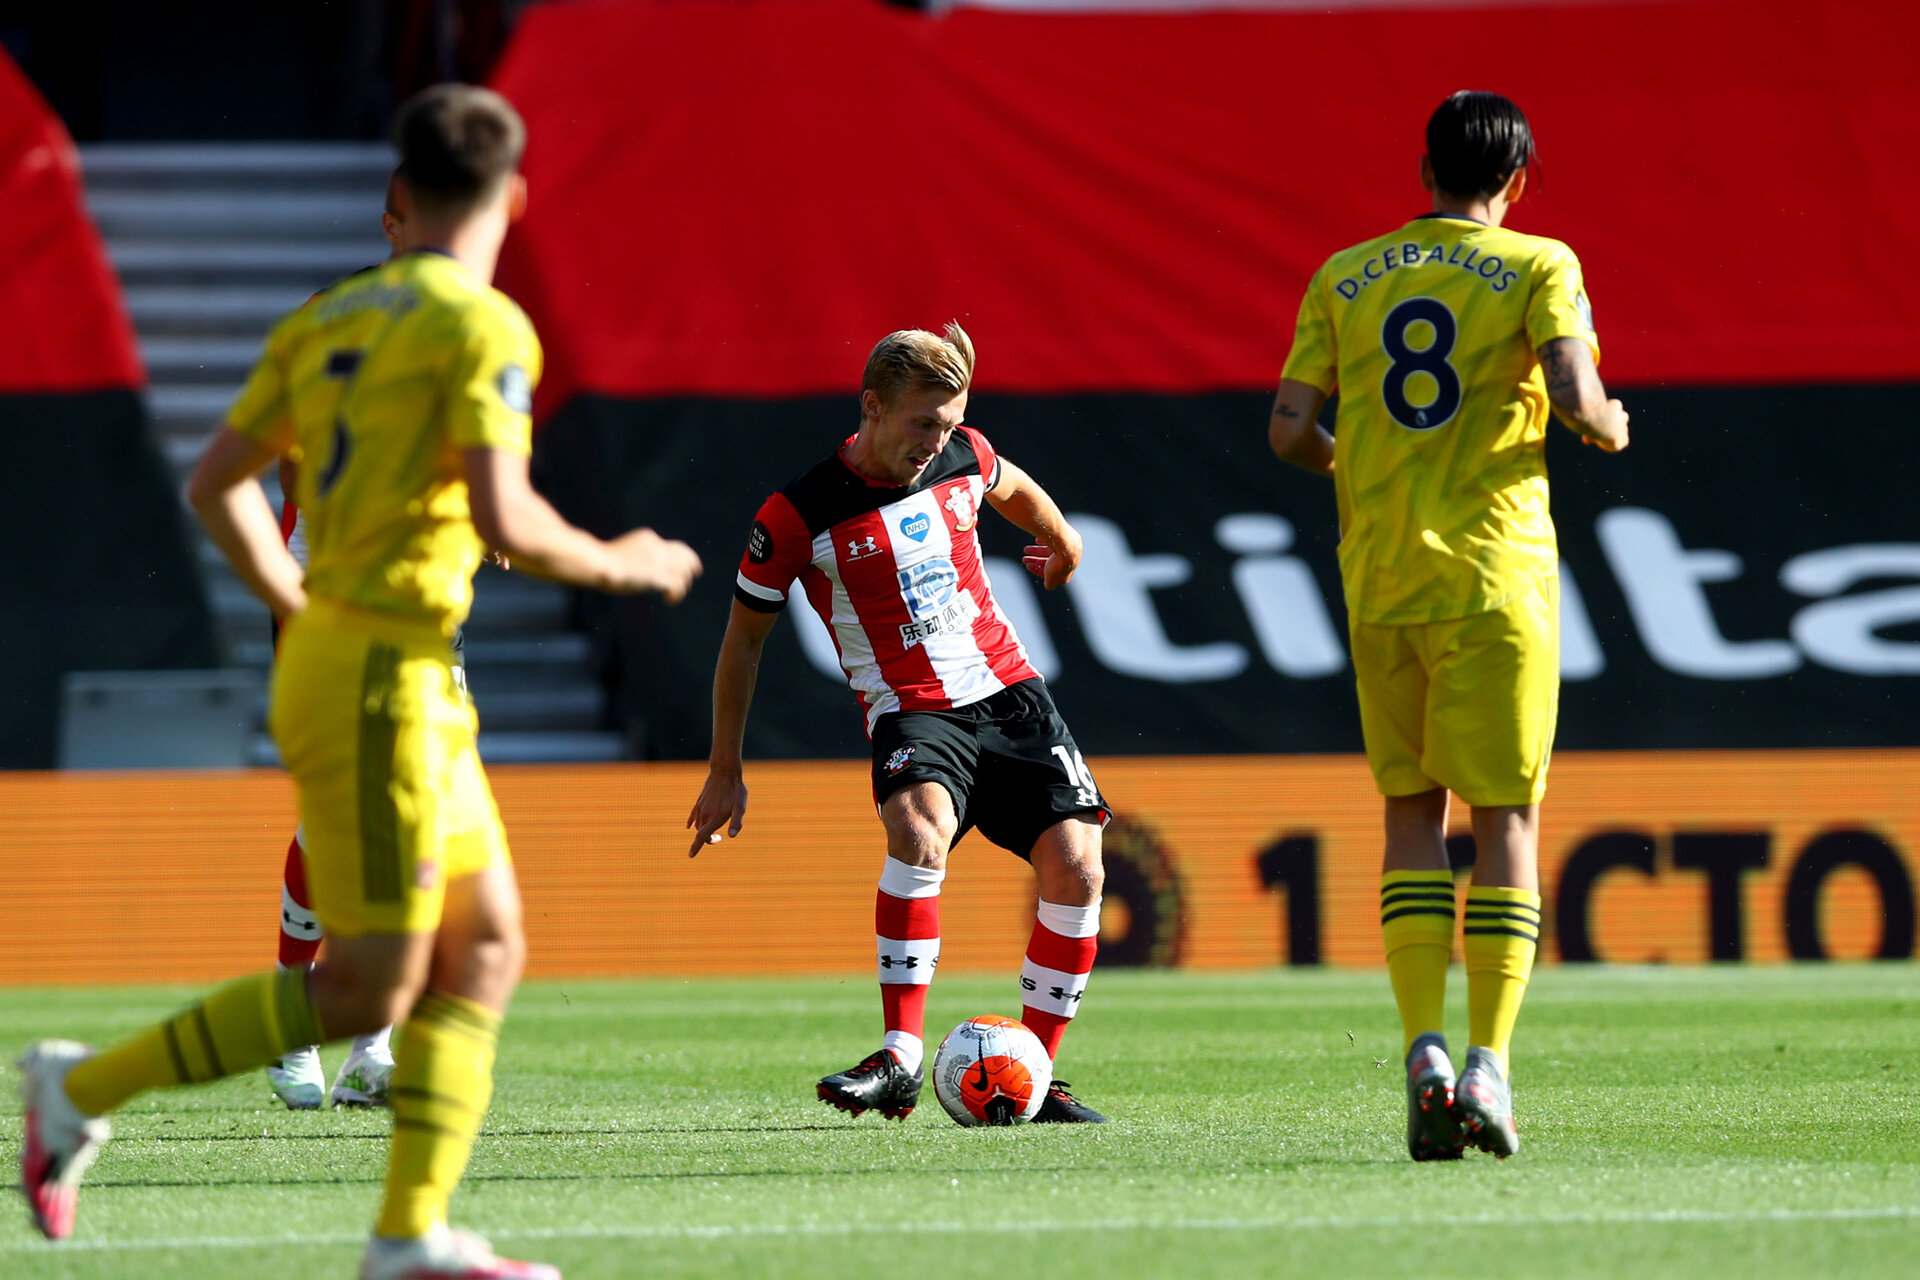 SOUTHAMPTON, ENGLAND - JUNE 25: James Ward-Prowse during the Premier League match between Southampton FC and Arsenal FC at St Mary's Stadium on March 21, 2020 in Southampton, United Kingdom. (Photo by Matt Watson/Southampton FC via Getty Images)